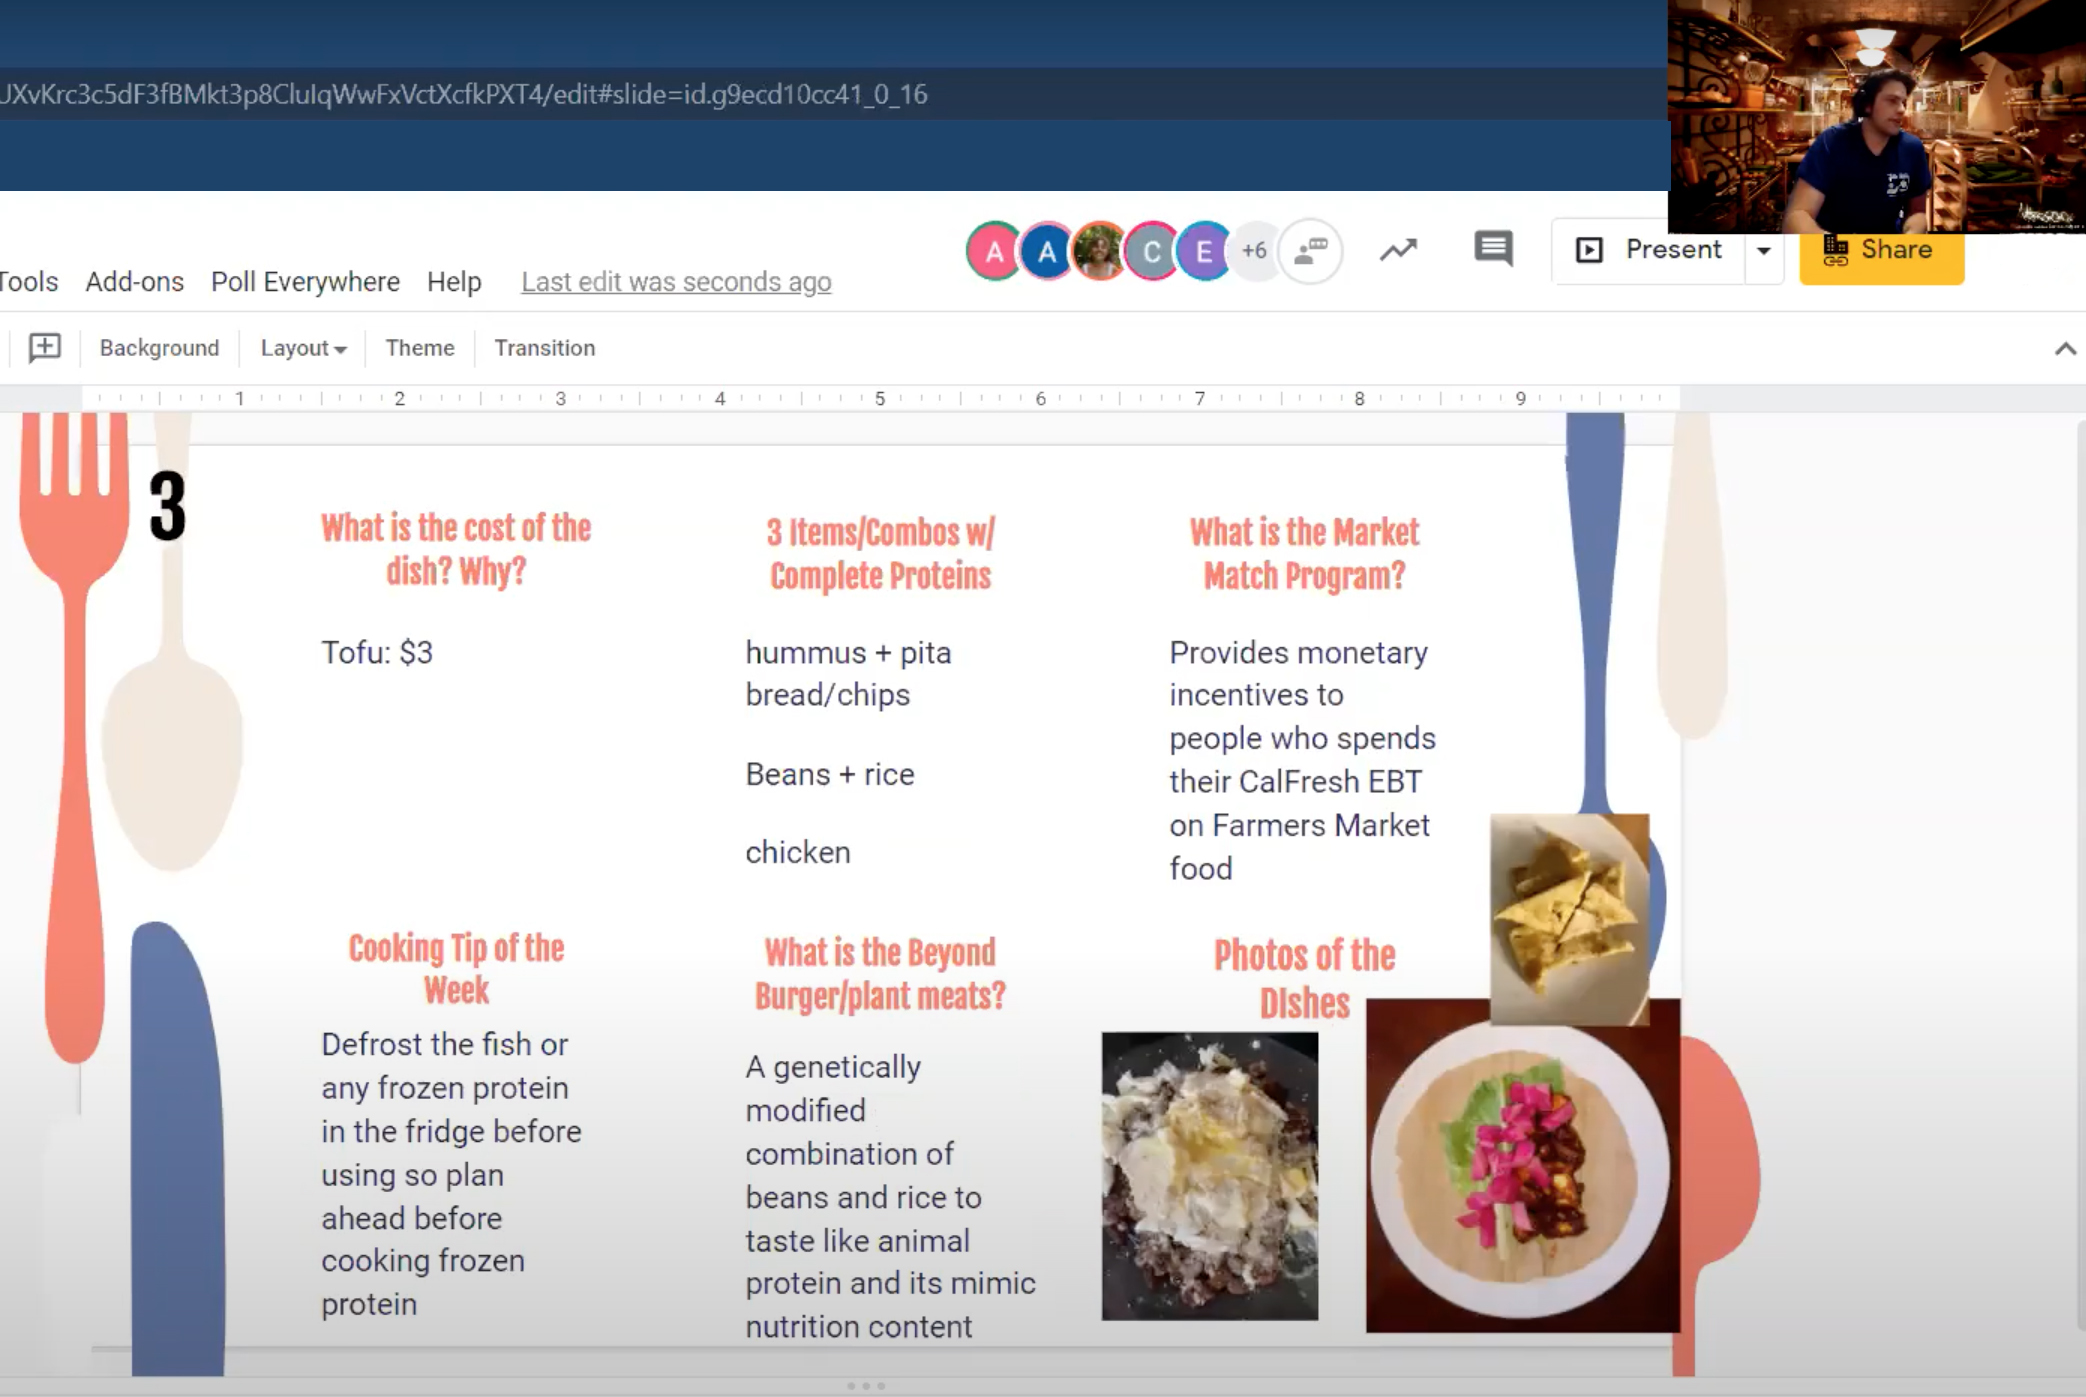 Screenshot of online lesson showing recipes and food images in the class lab